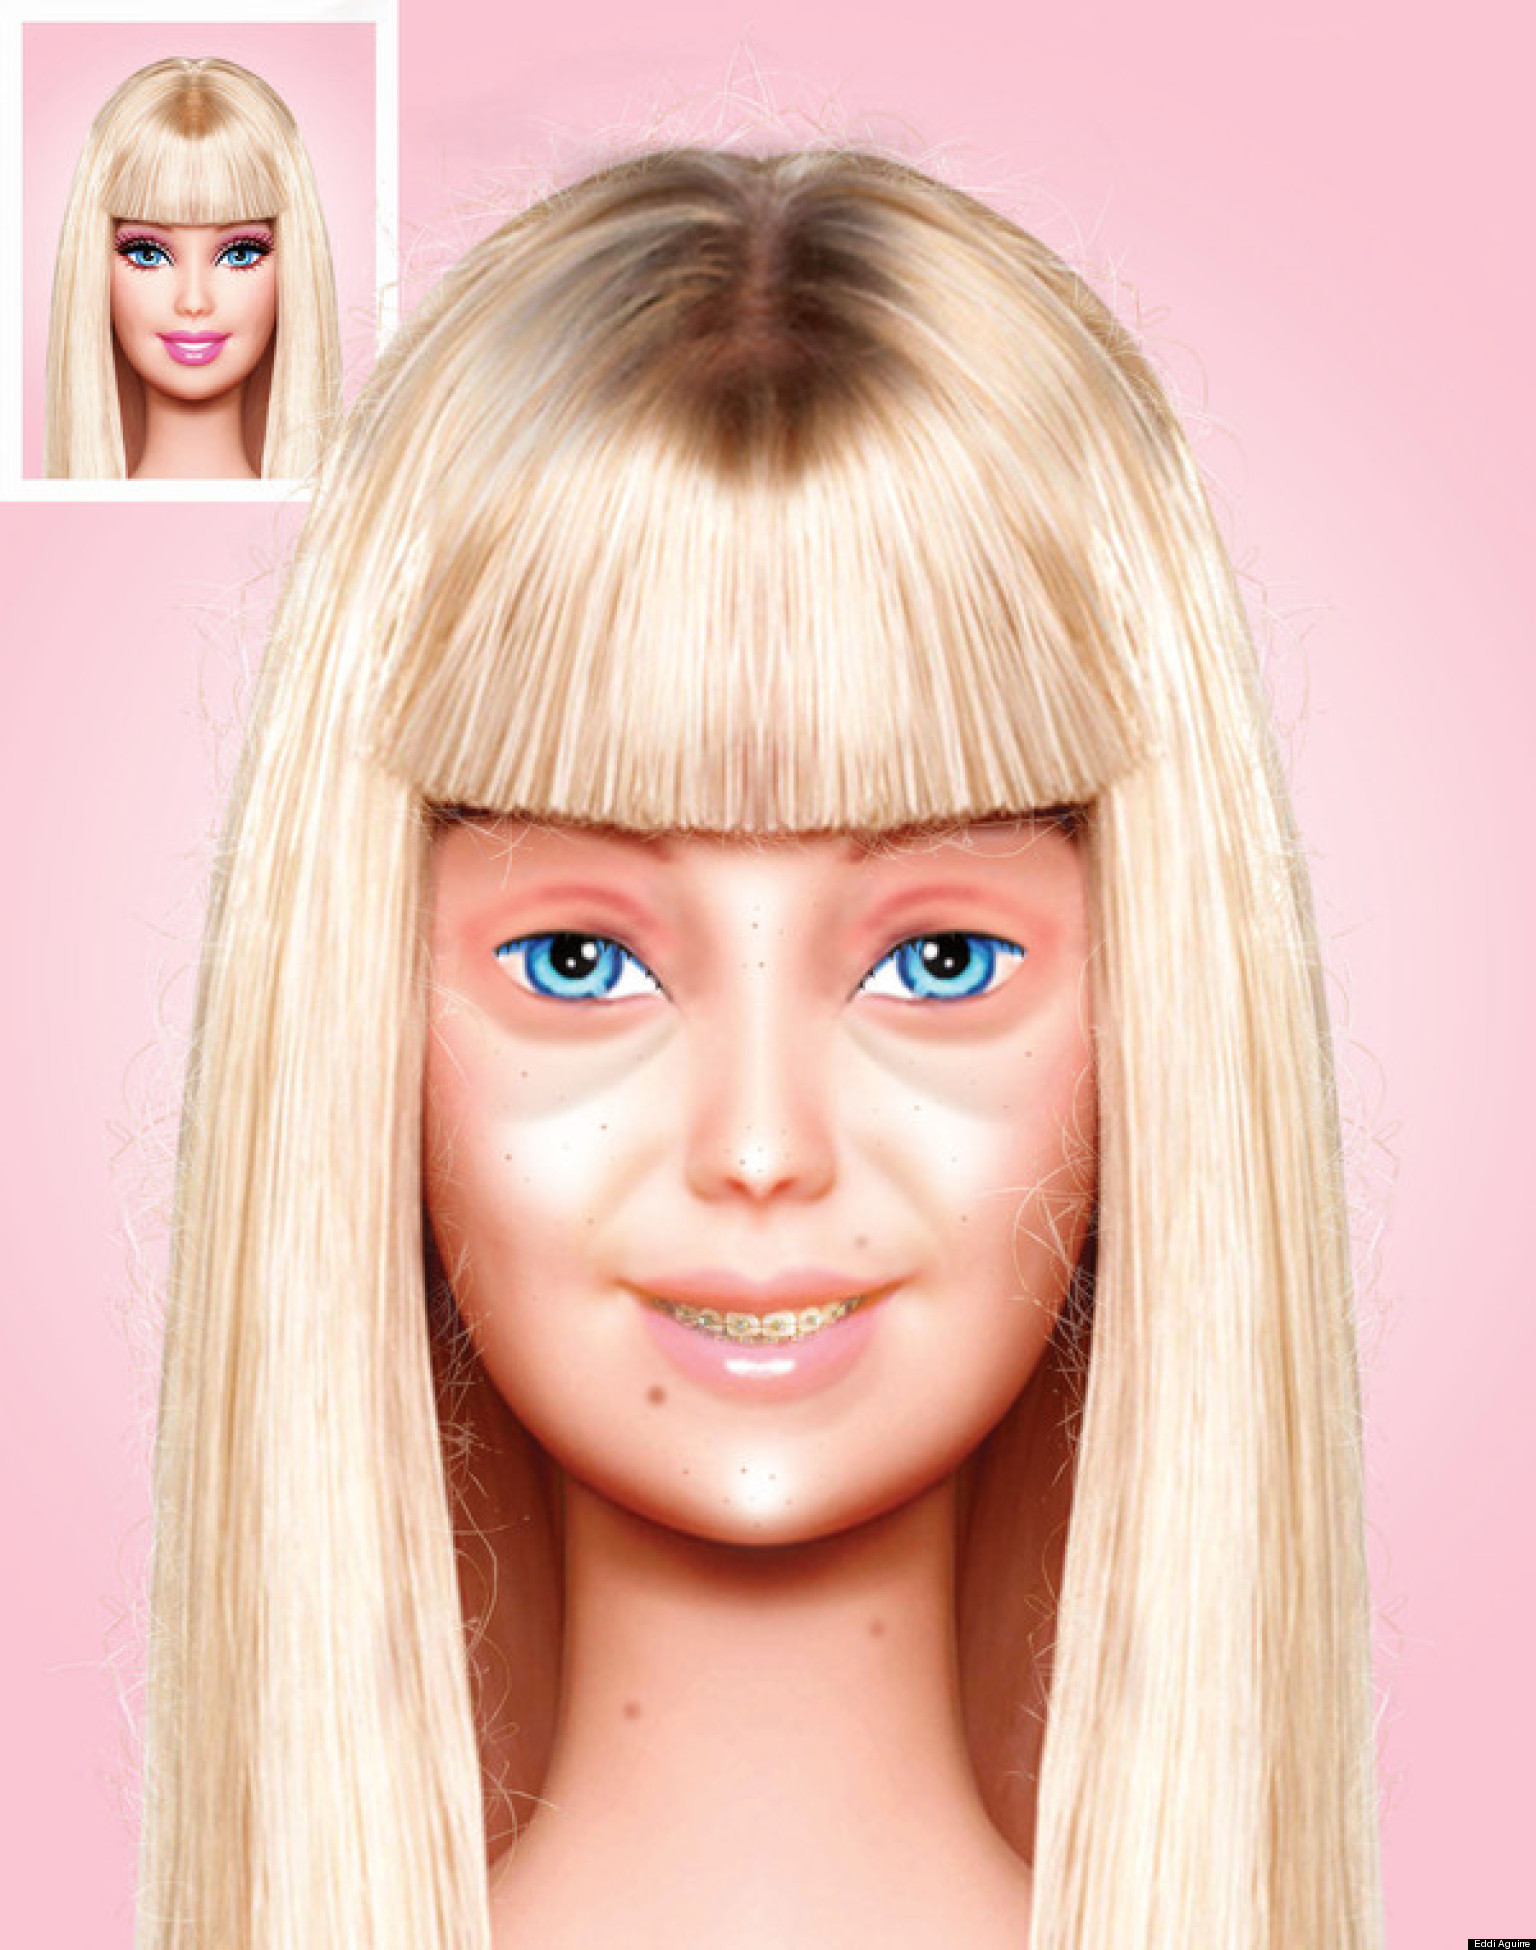 Barbie Without Makeup Before And After Pics